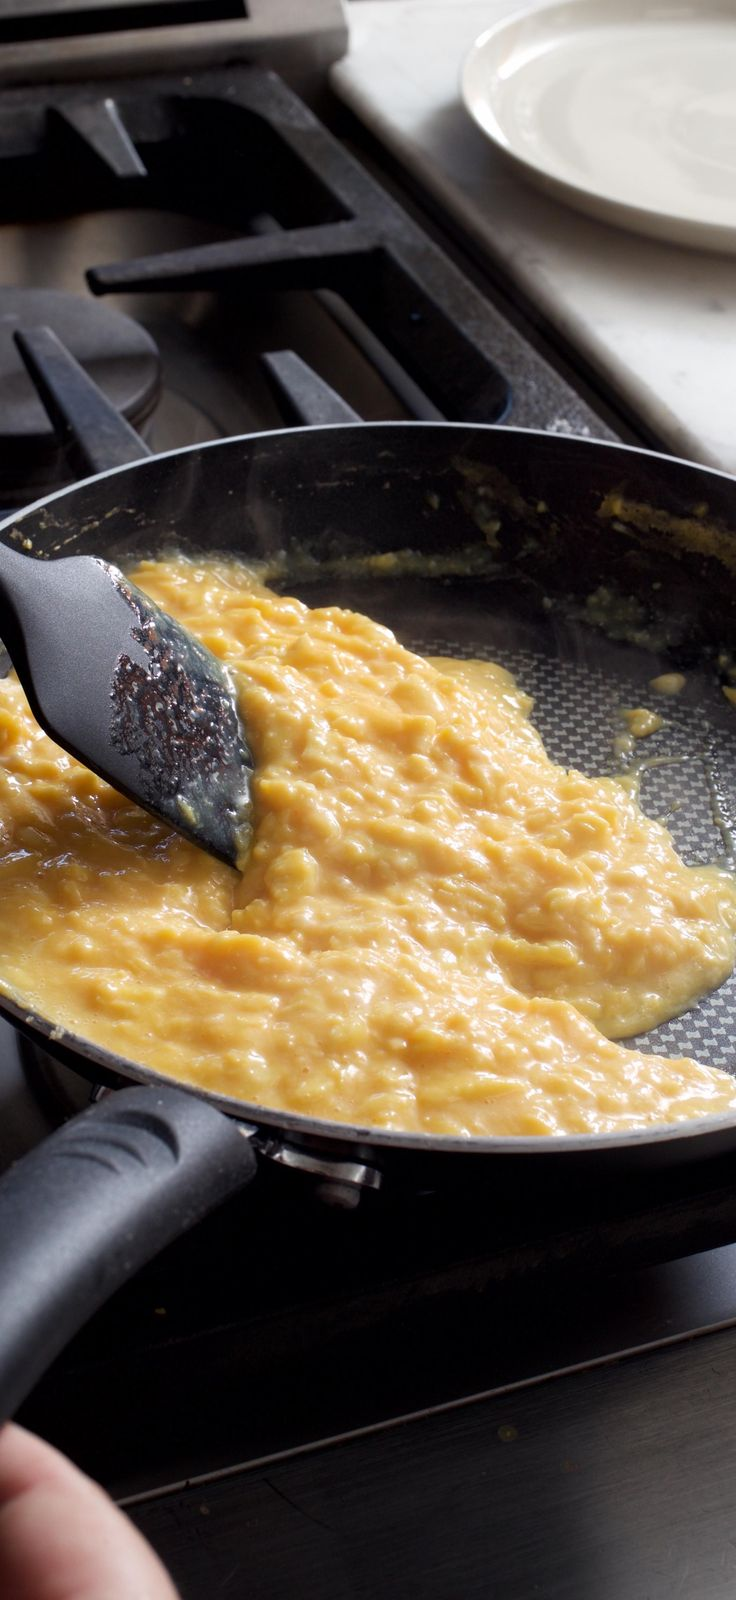 Creamy French-Style Scrambled Eggs. For incredibly lush and creamy eggs, the key is to take things slow.